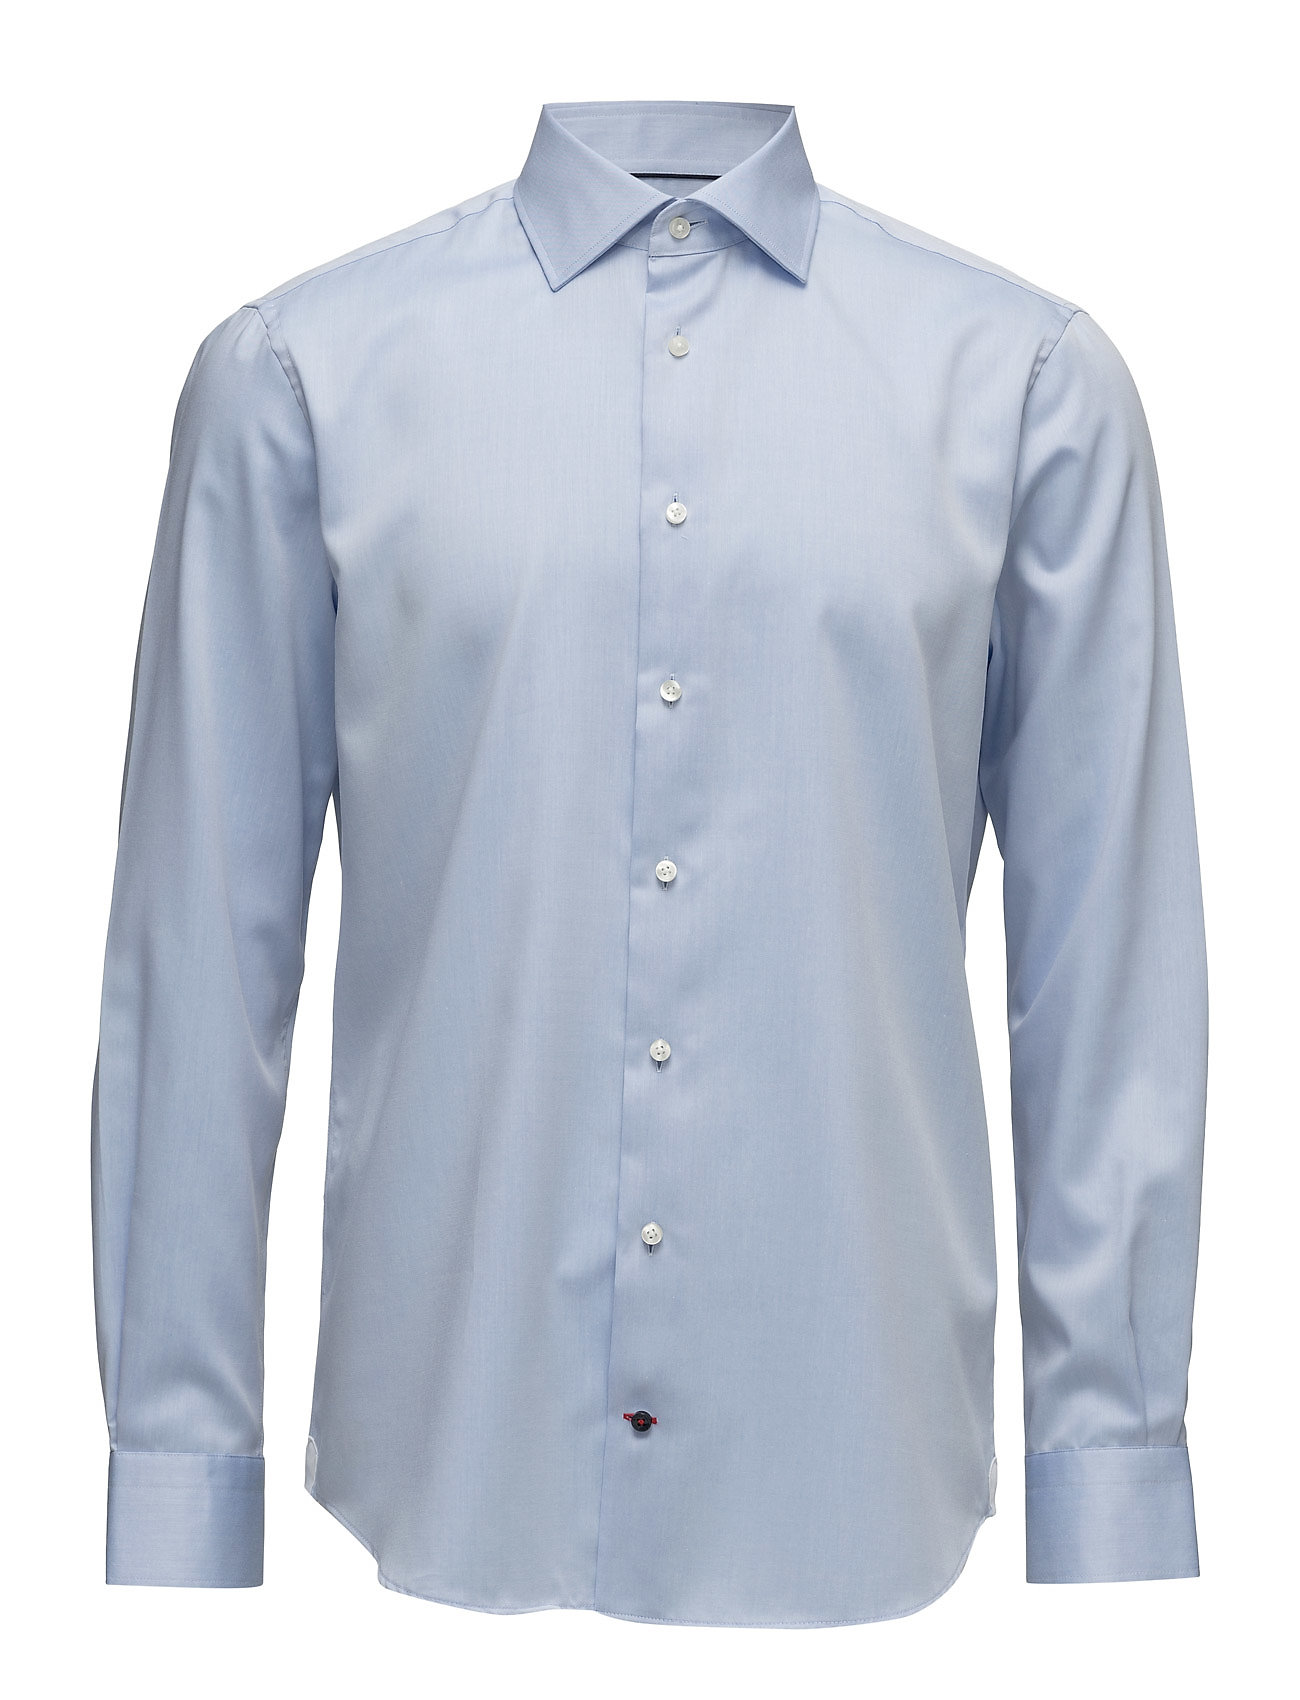 Tommy Hilfiger Tailored CORE TWILL CLASSIC SHIRT - 410